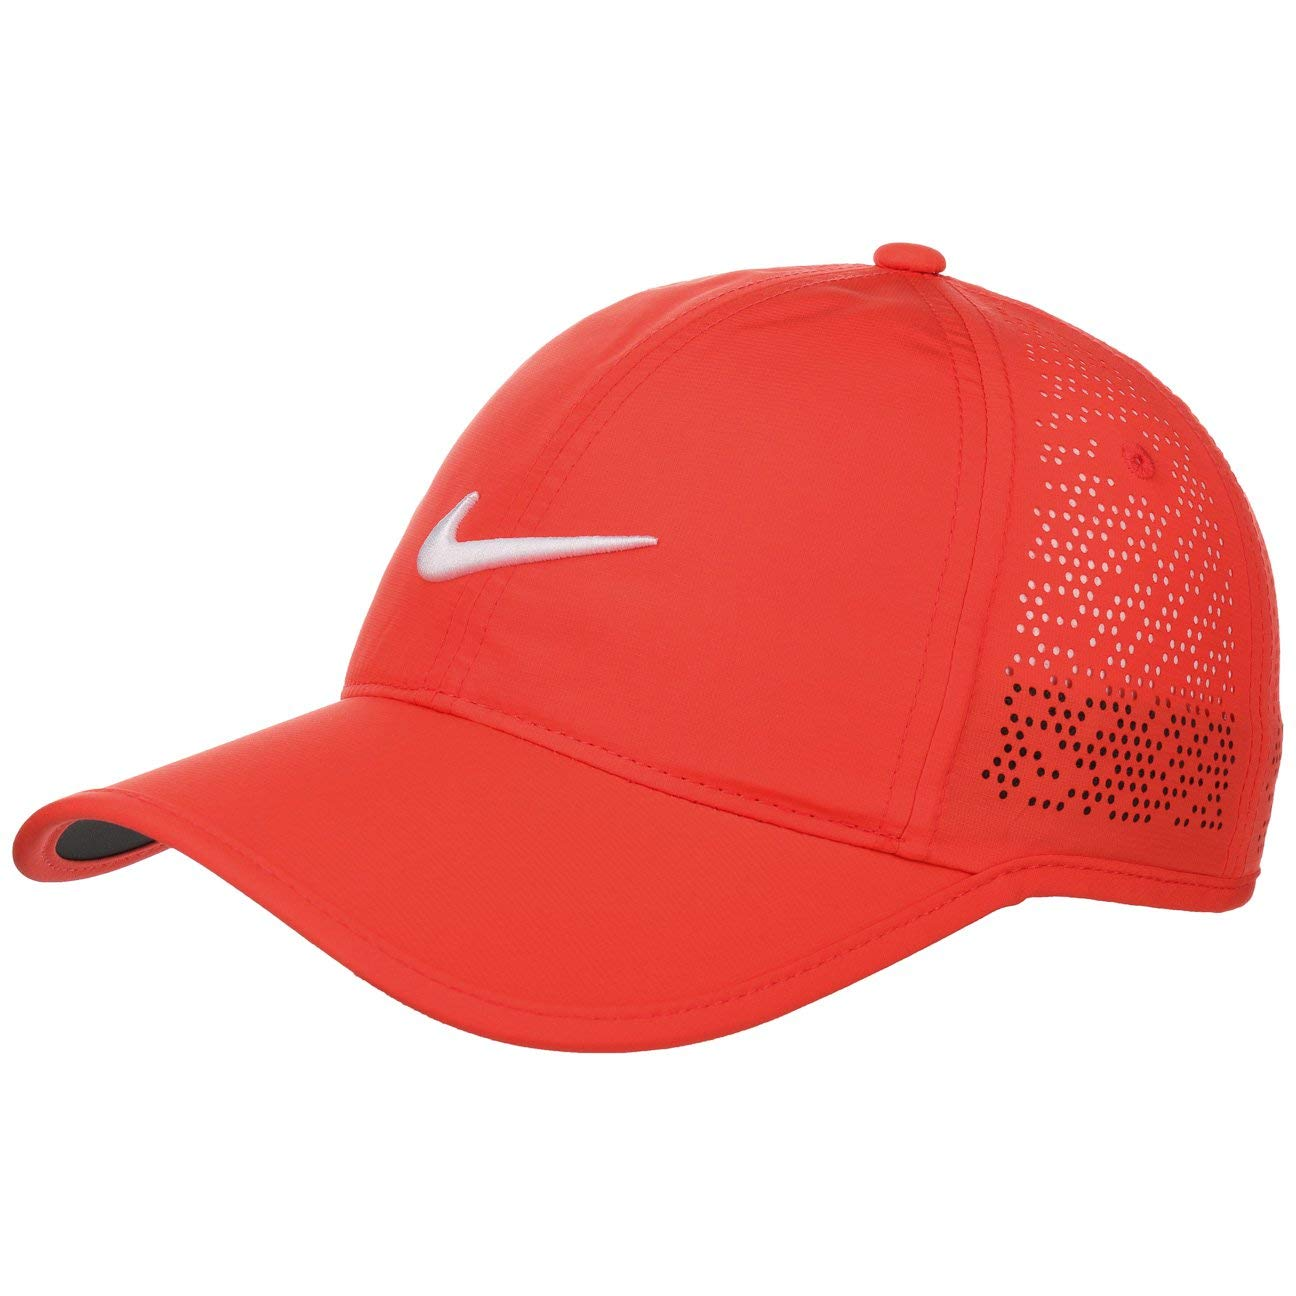 87a02500b 2015 Womens Nike Performance Perforated Womens Golf Cap